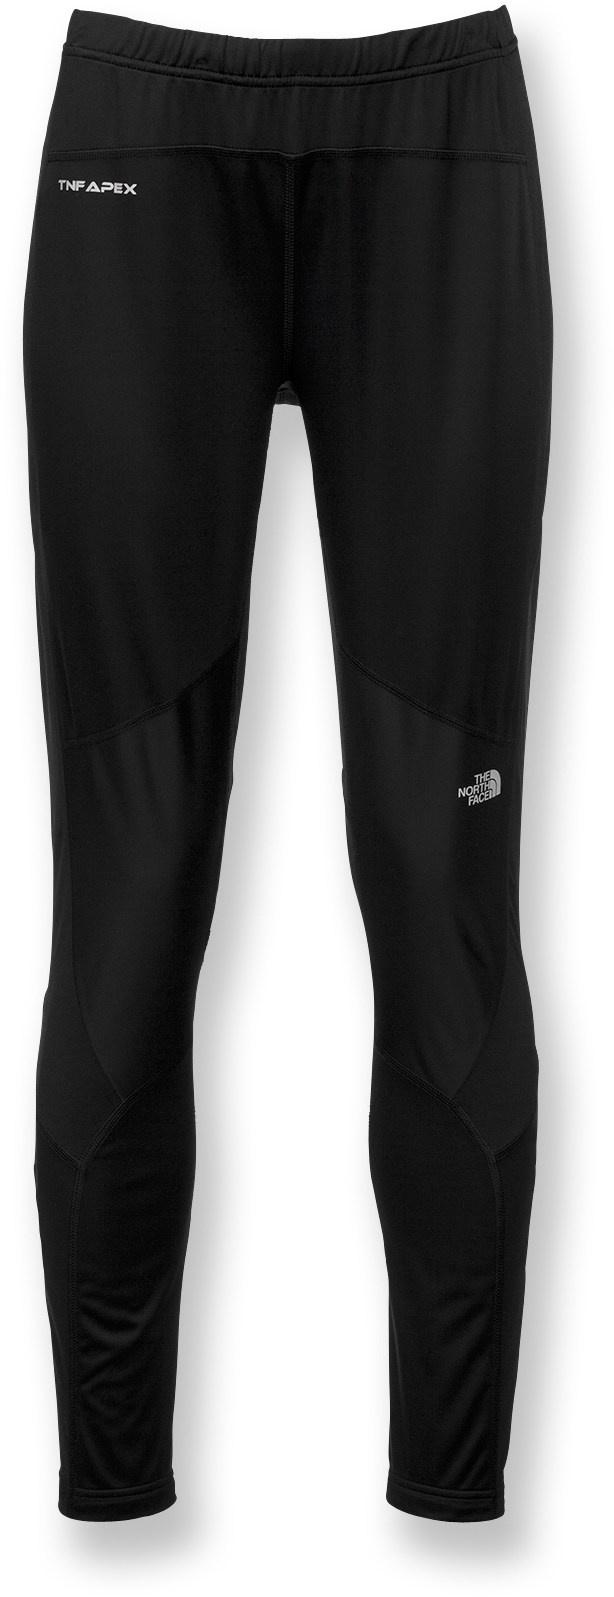 The North Face Apex ClimateBlock Tights - Women's - Free Shipping at REI.com